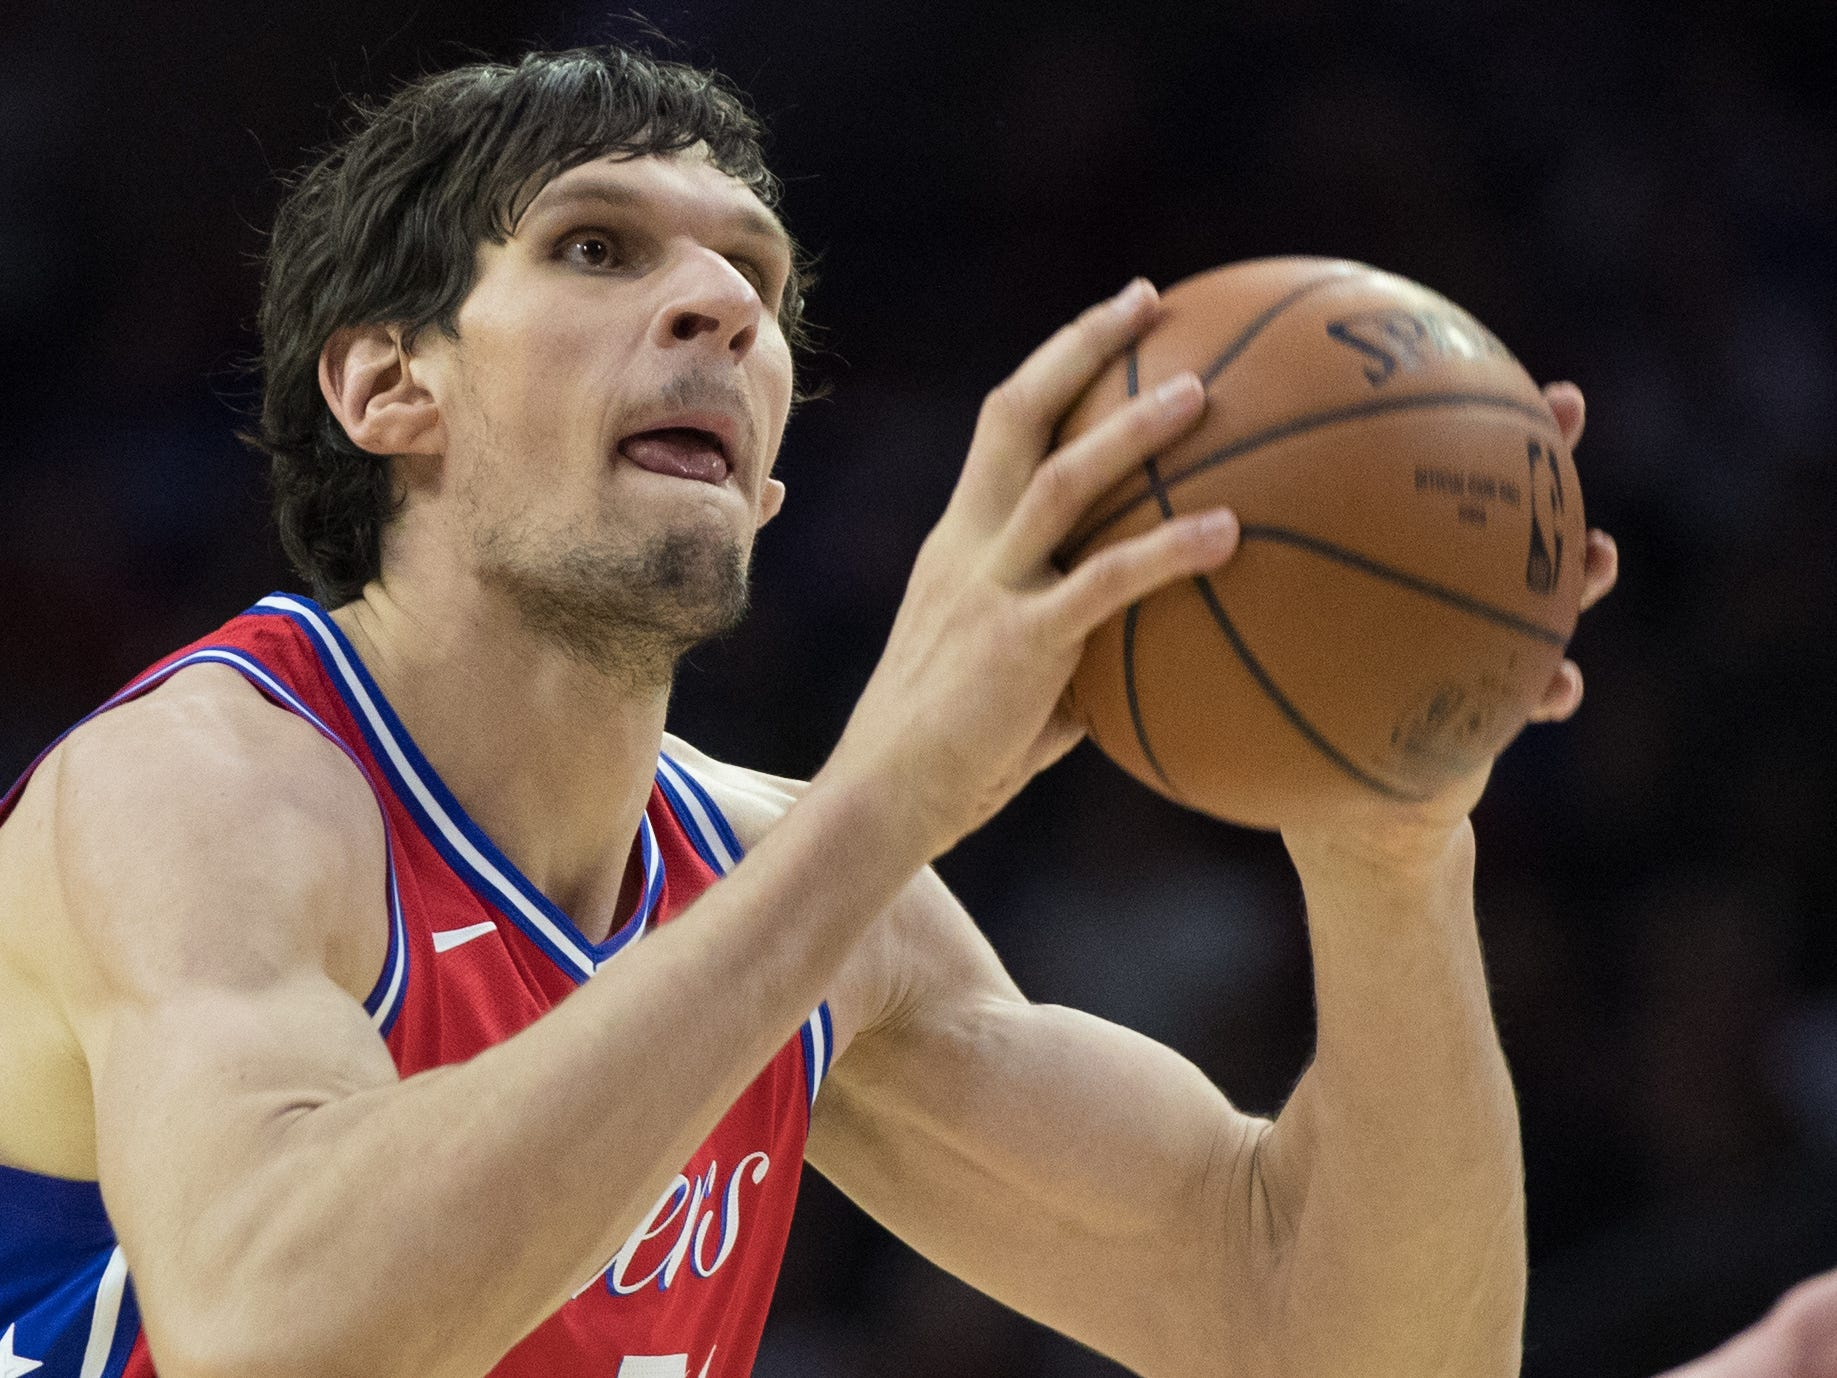 Philadelphia 76ers center Boban Marjanovic shoots against the Denver Nuggets in Philadelphia, Feb. 8, 2019.